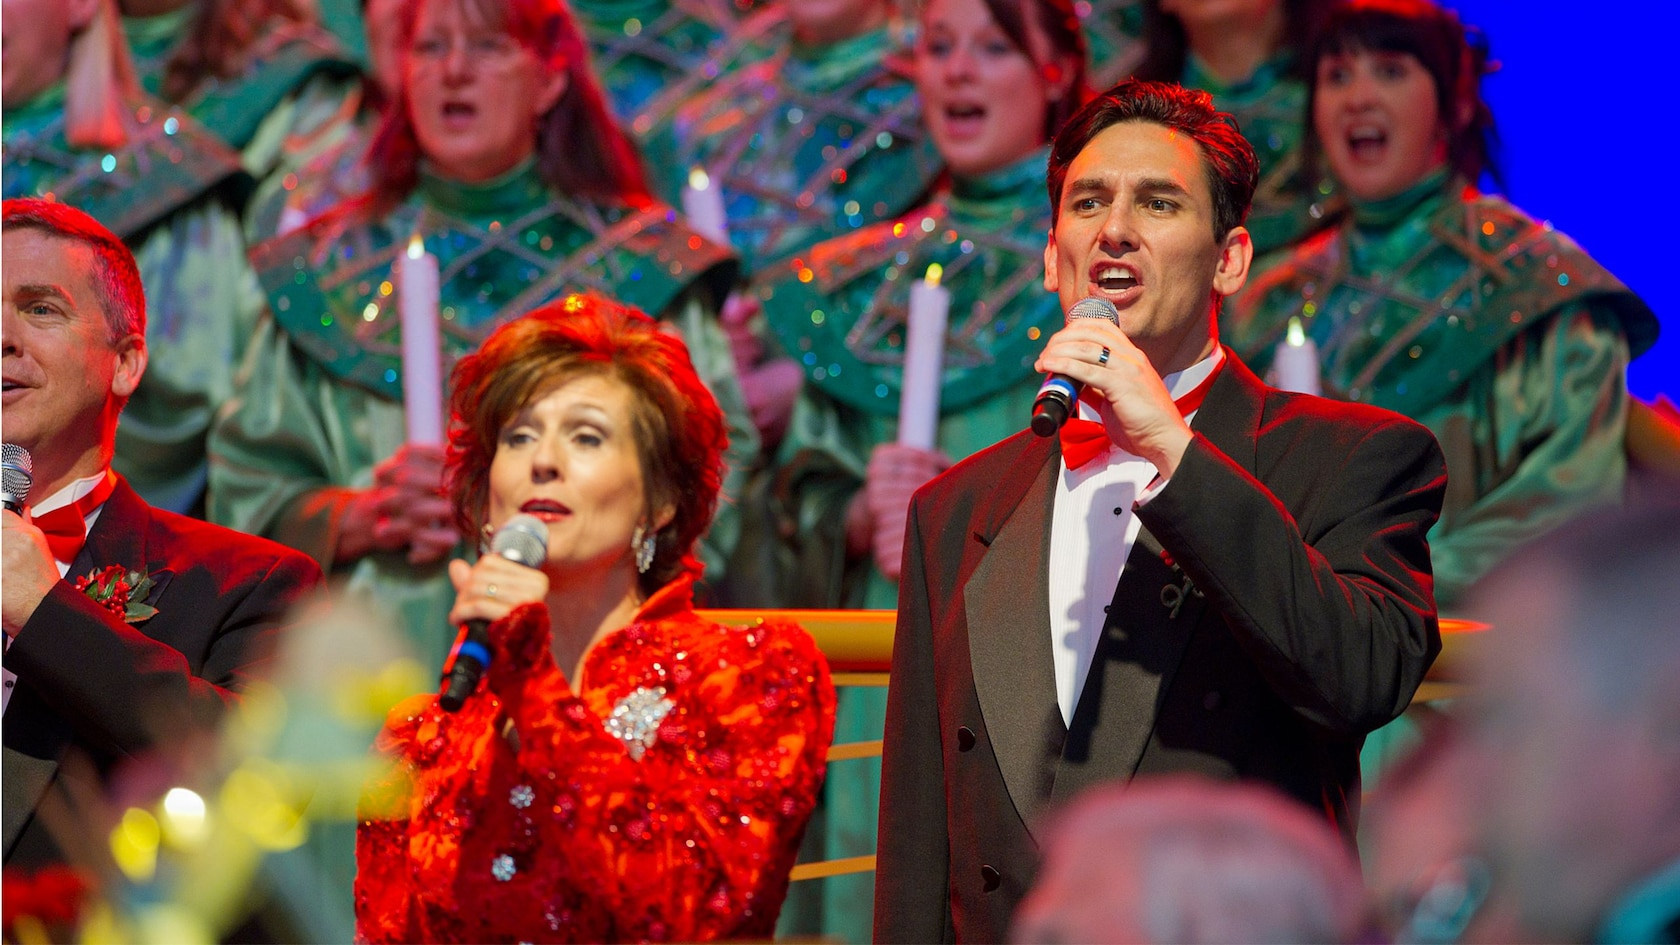 Live Performance from the Candlelight Processional at Epcot